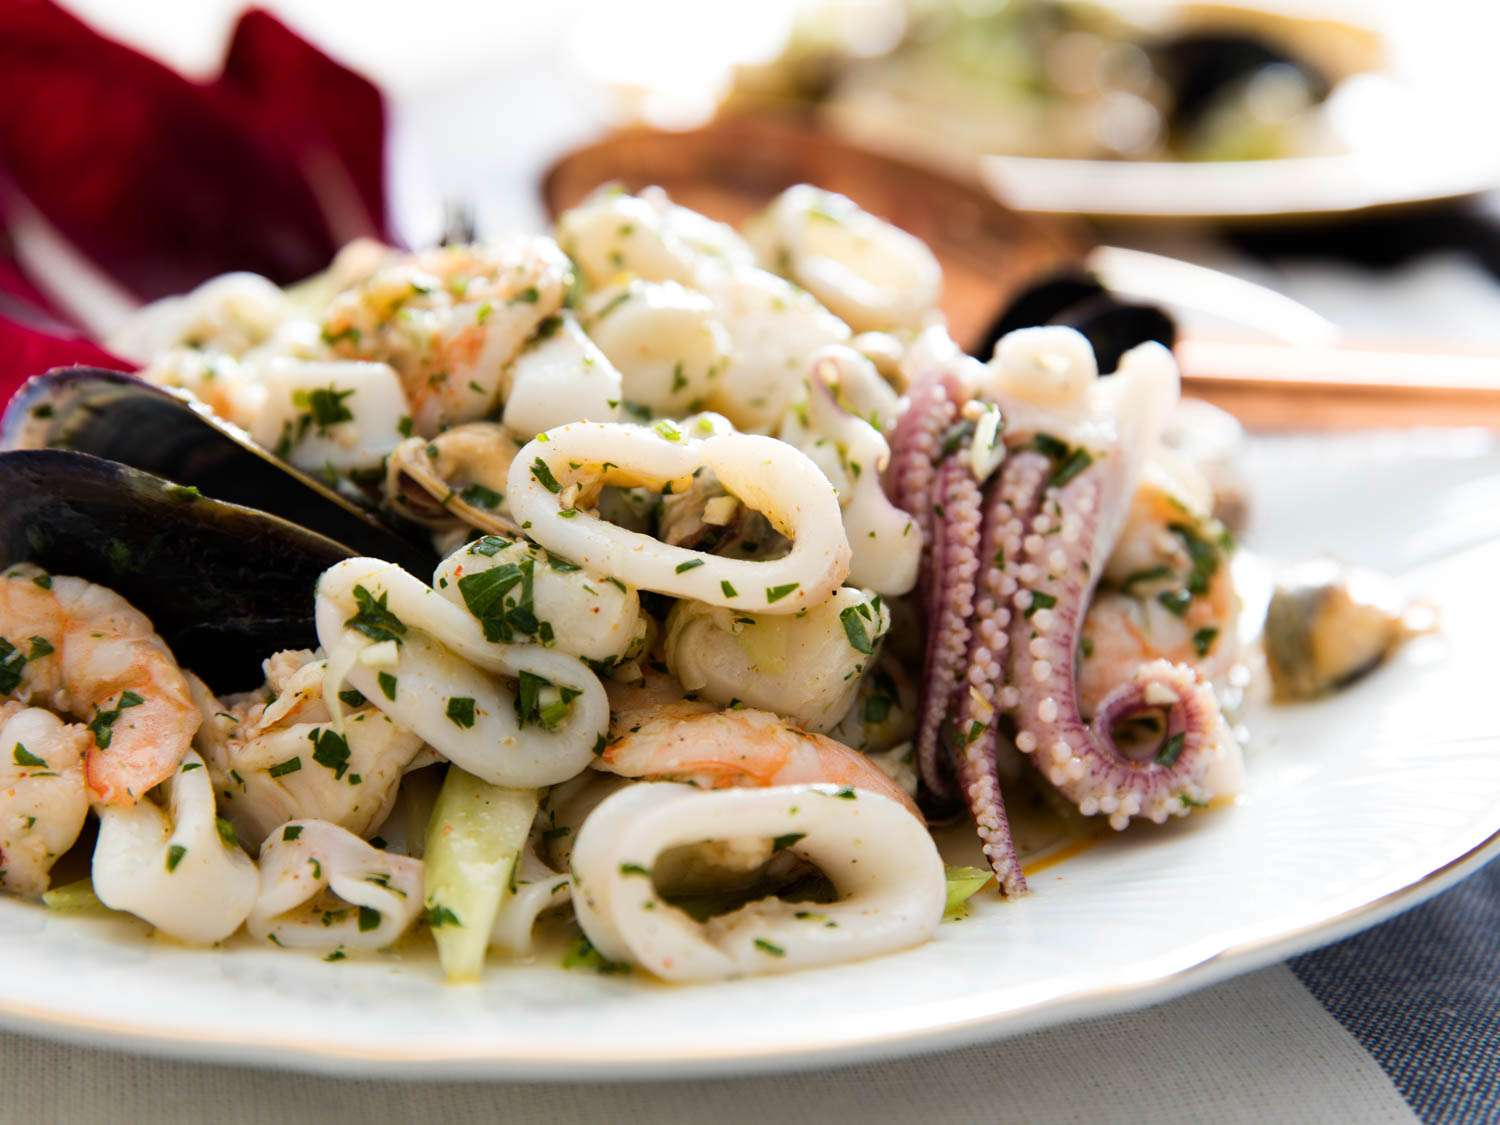 20160714-chilled-seafood-recipes-roundup-15.jpg